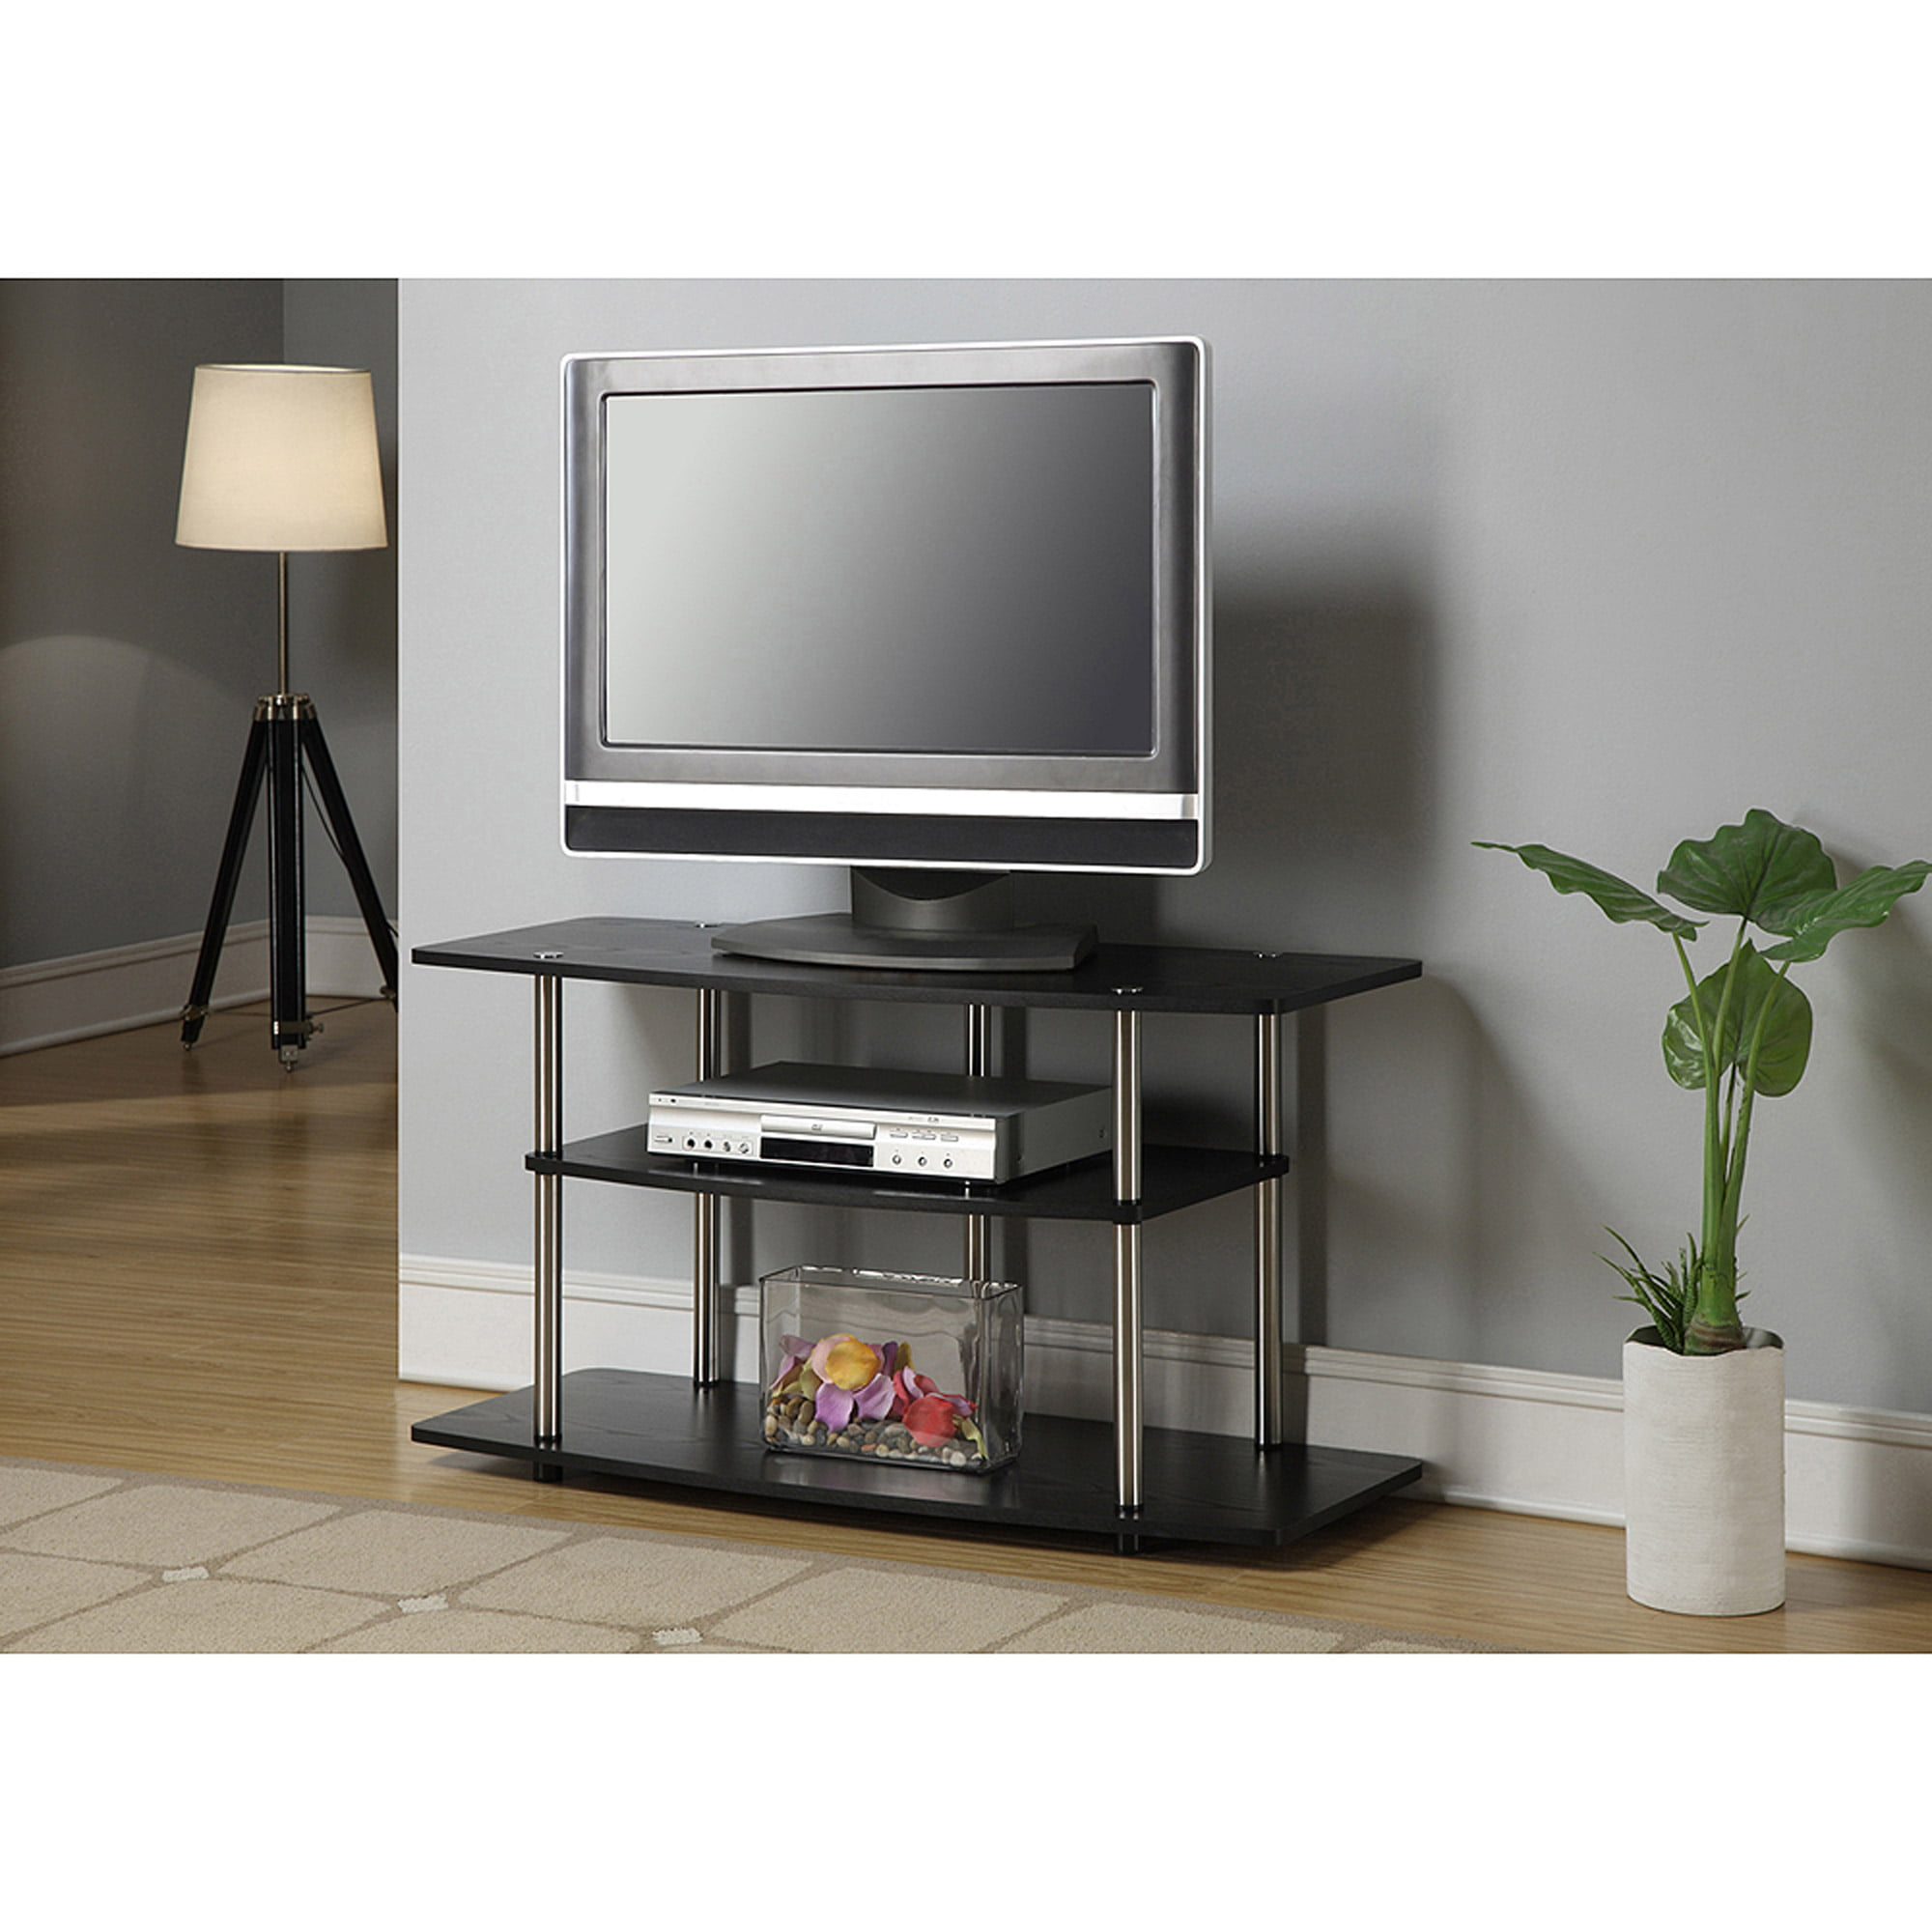 Z Line Designs Soliss 3 In 1 Tv Stand With Mount For Tvs Up To 60